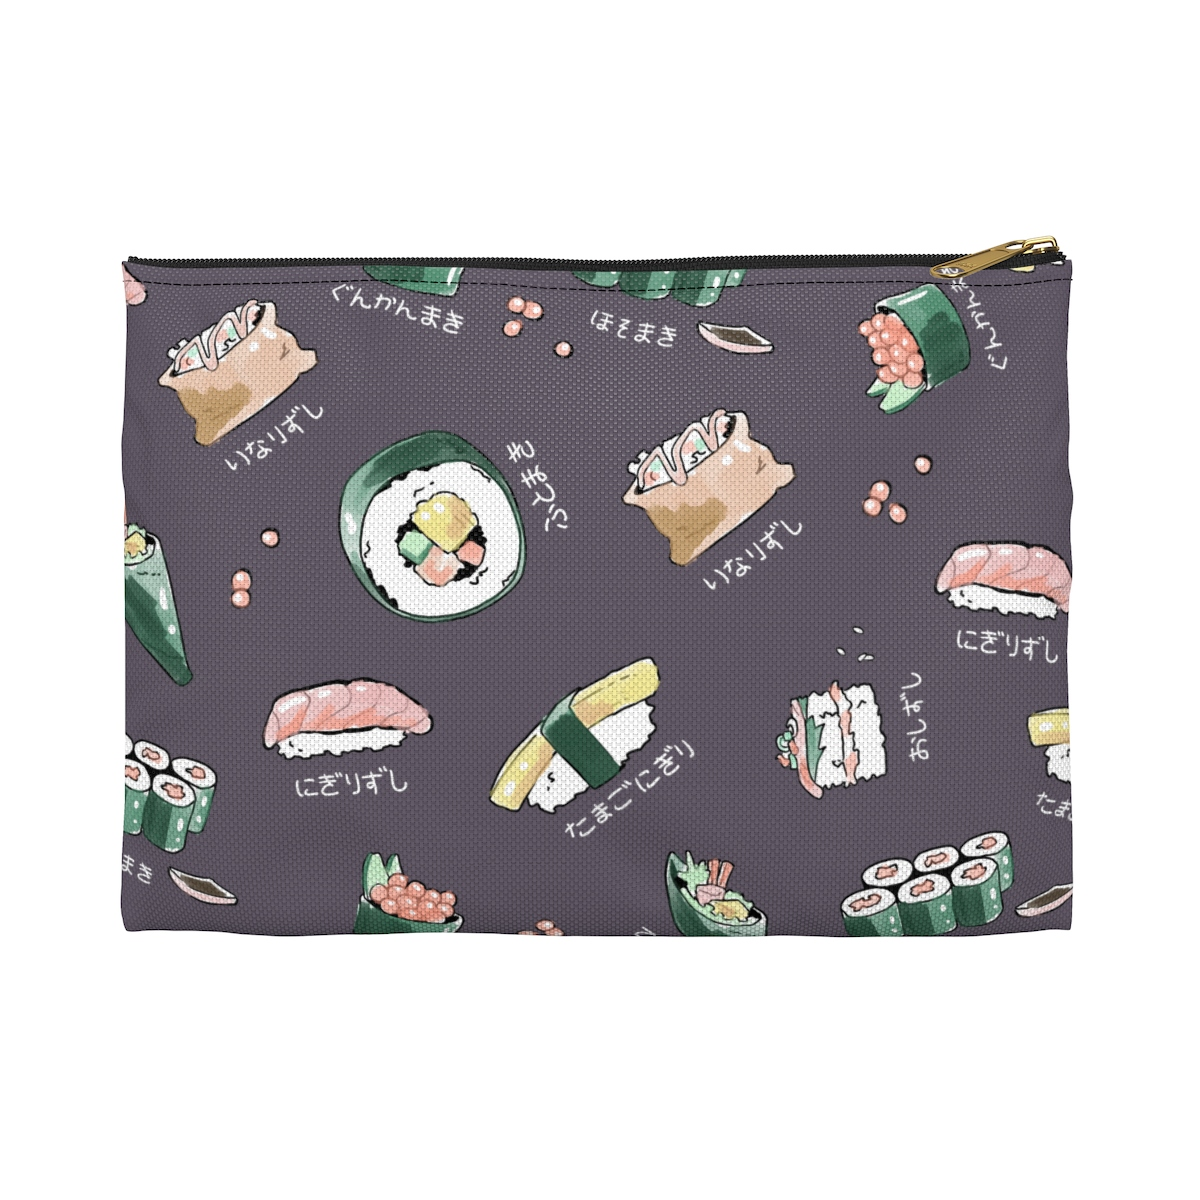 Sushi Menu Pencil Pouch - Charcoal Grey